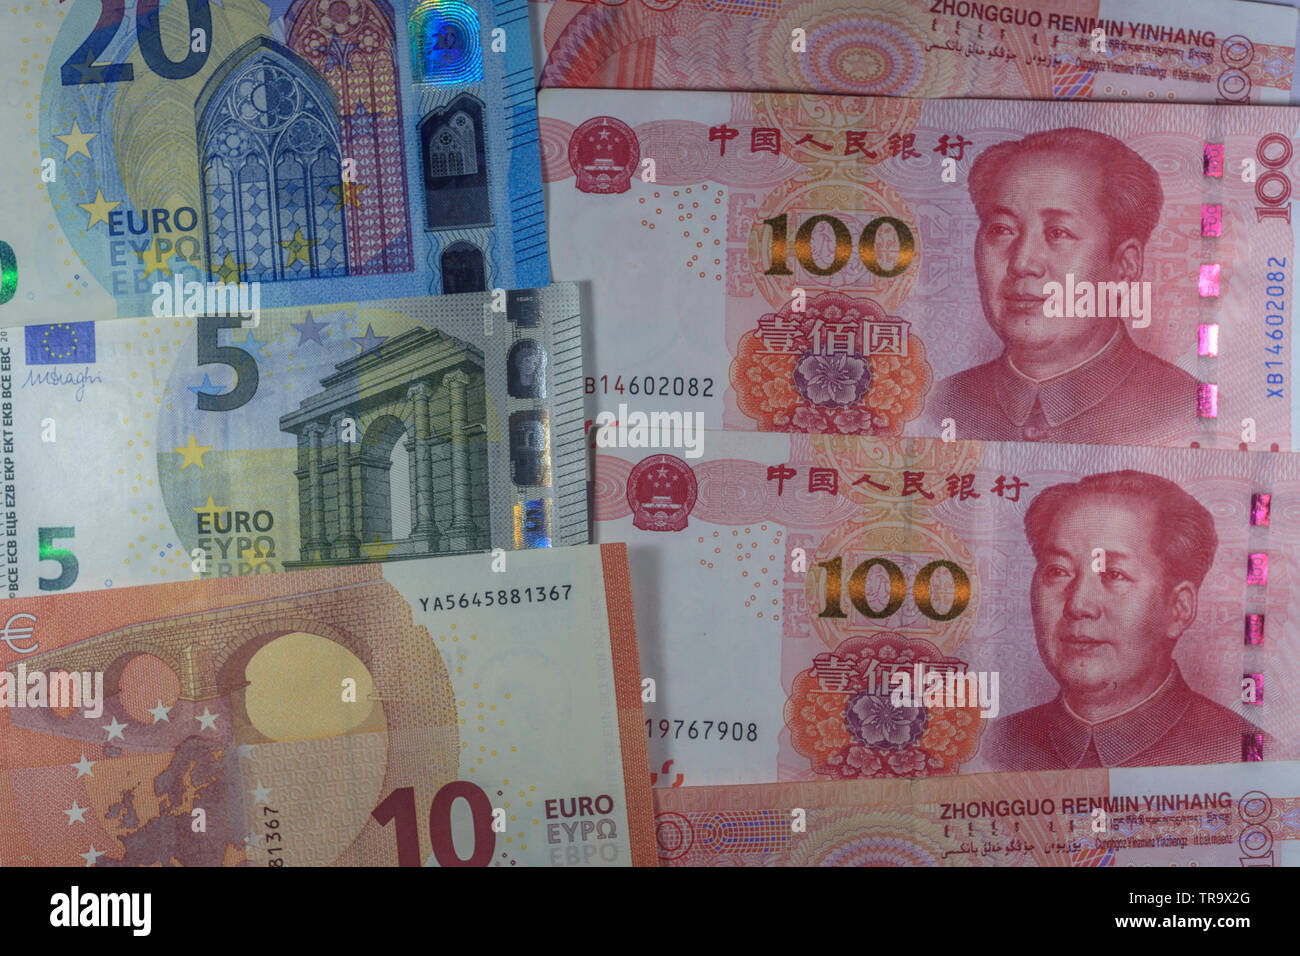 EU and China trading currencies - Stock Image